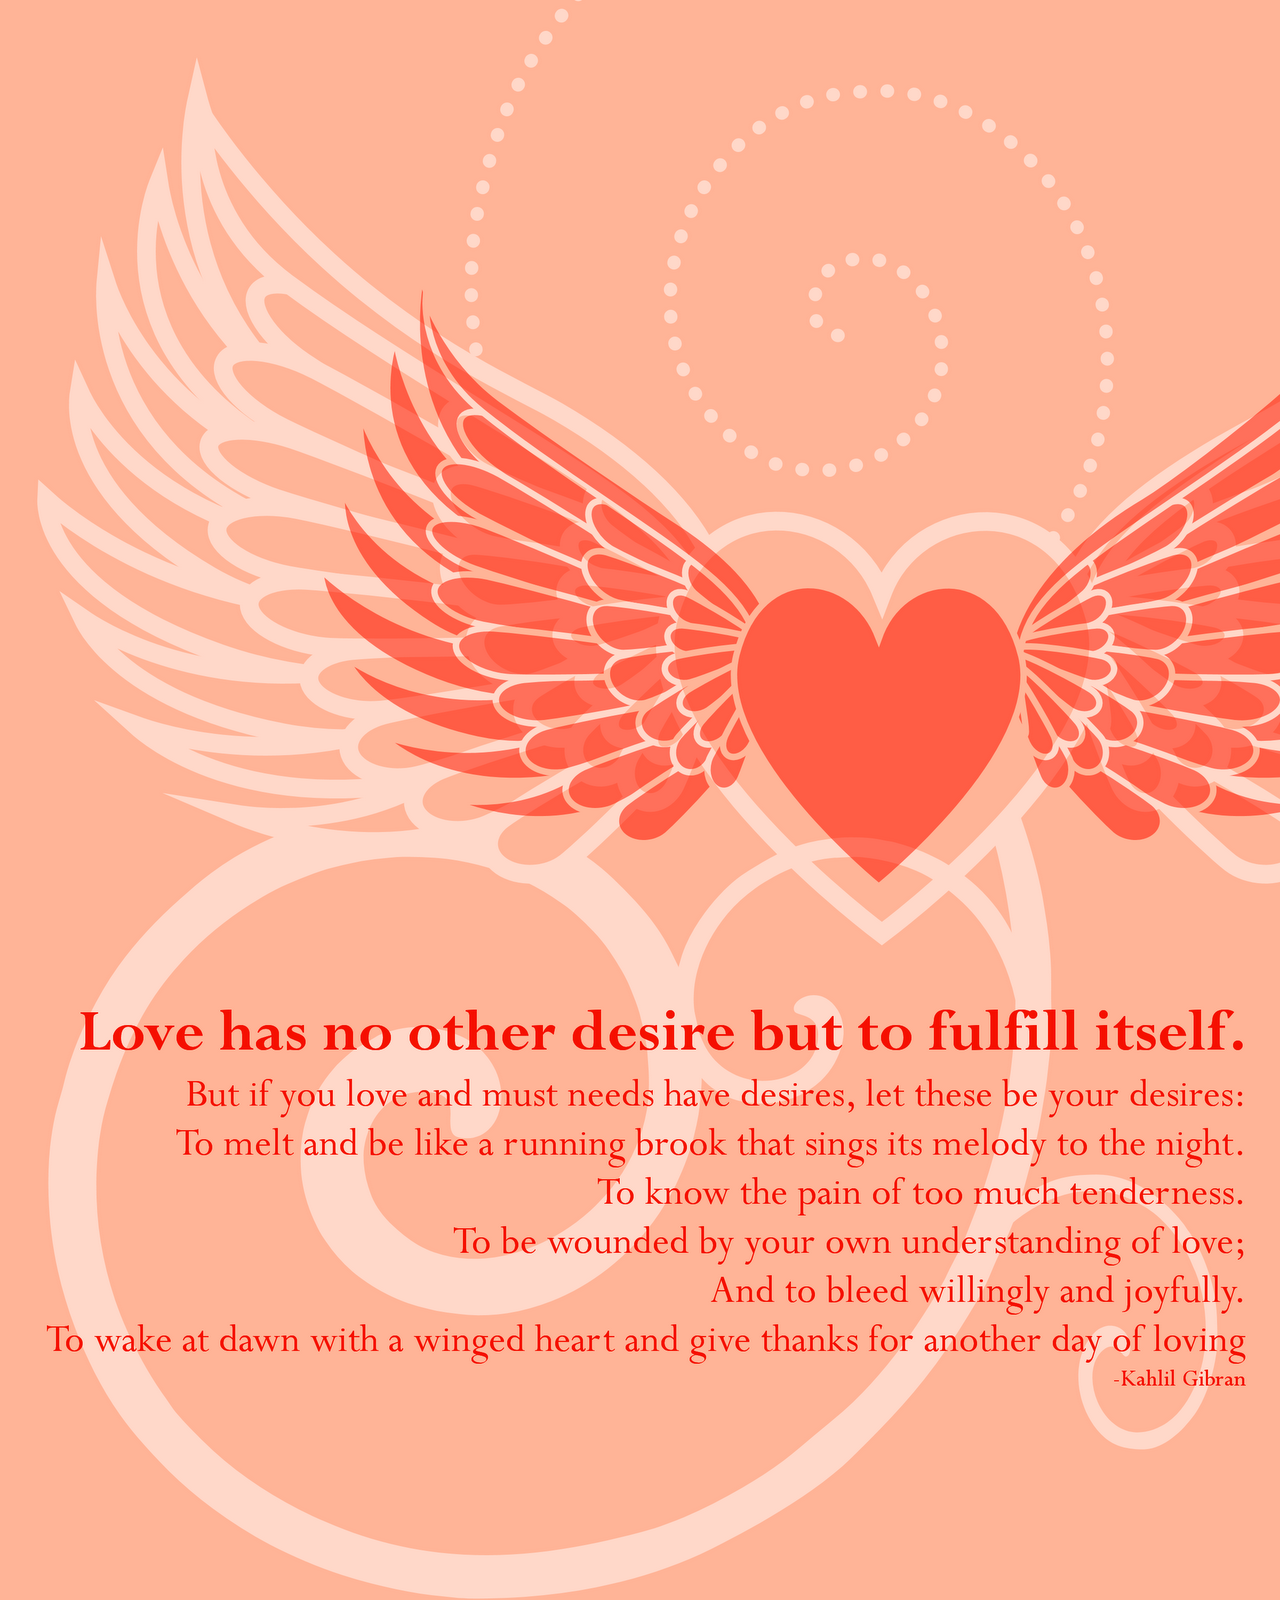 Quotes About Love: Kahlil Gibran Quotes On Love